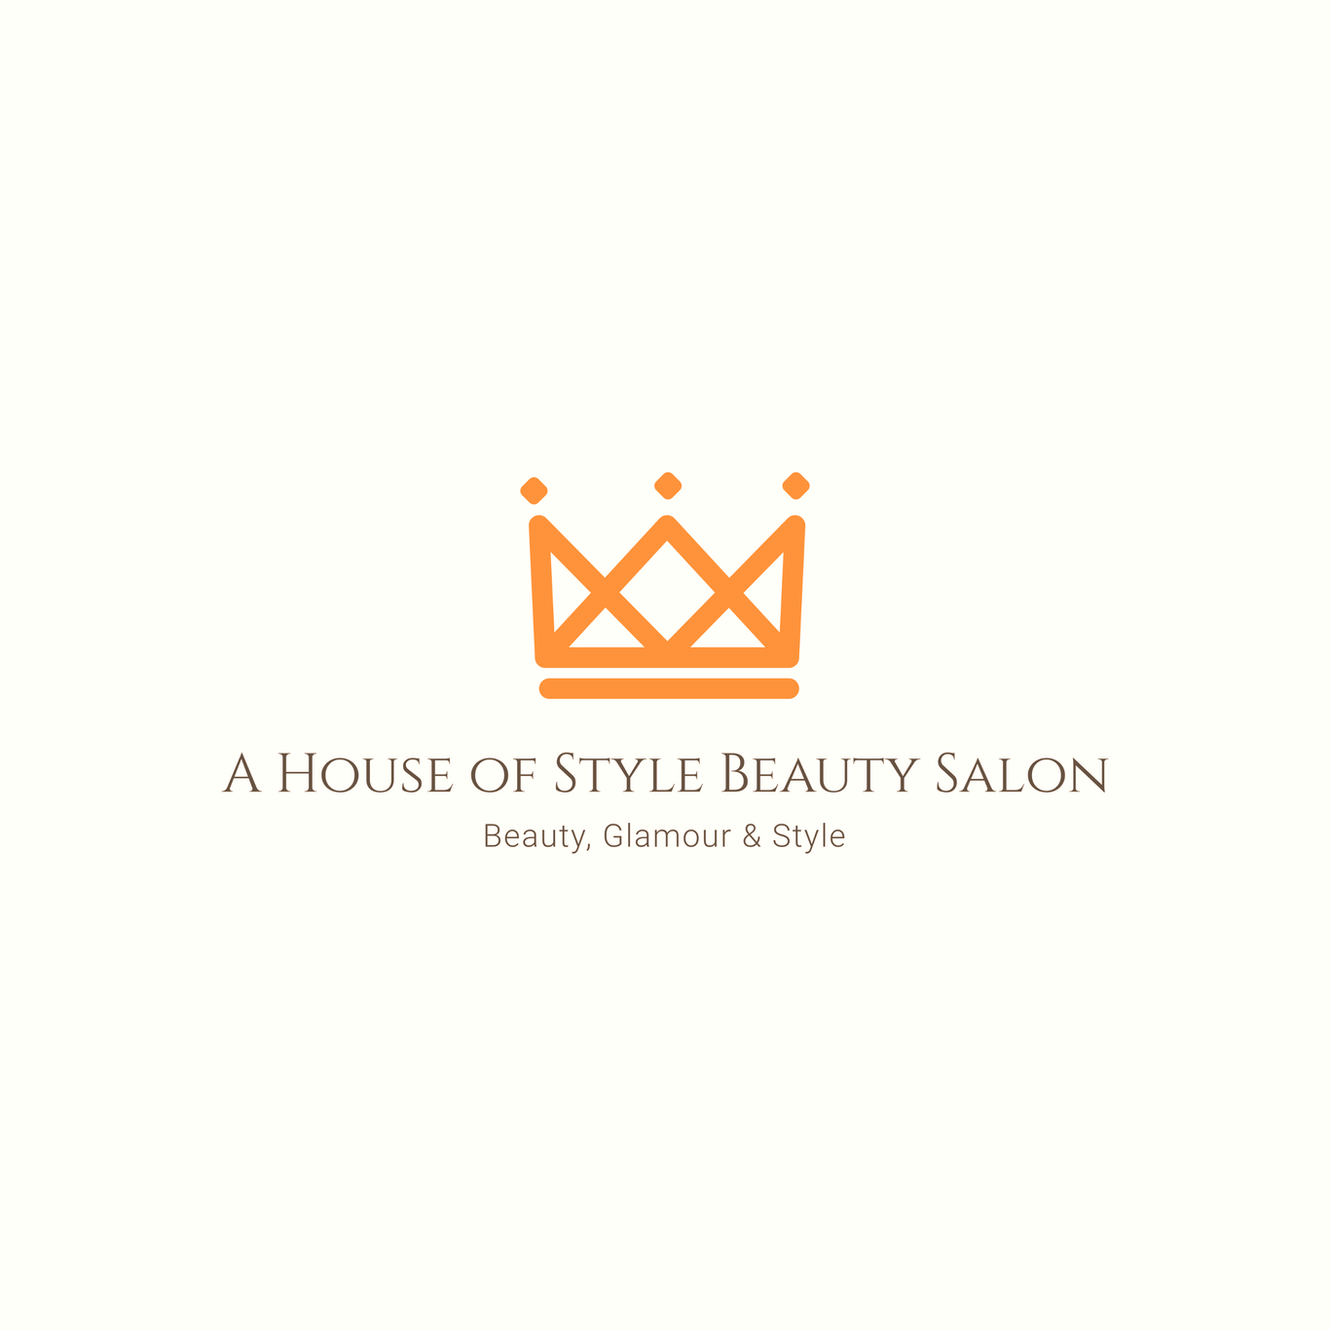 A House of Style